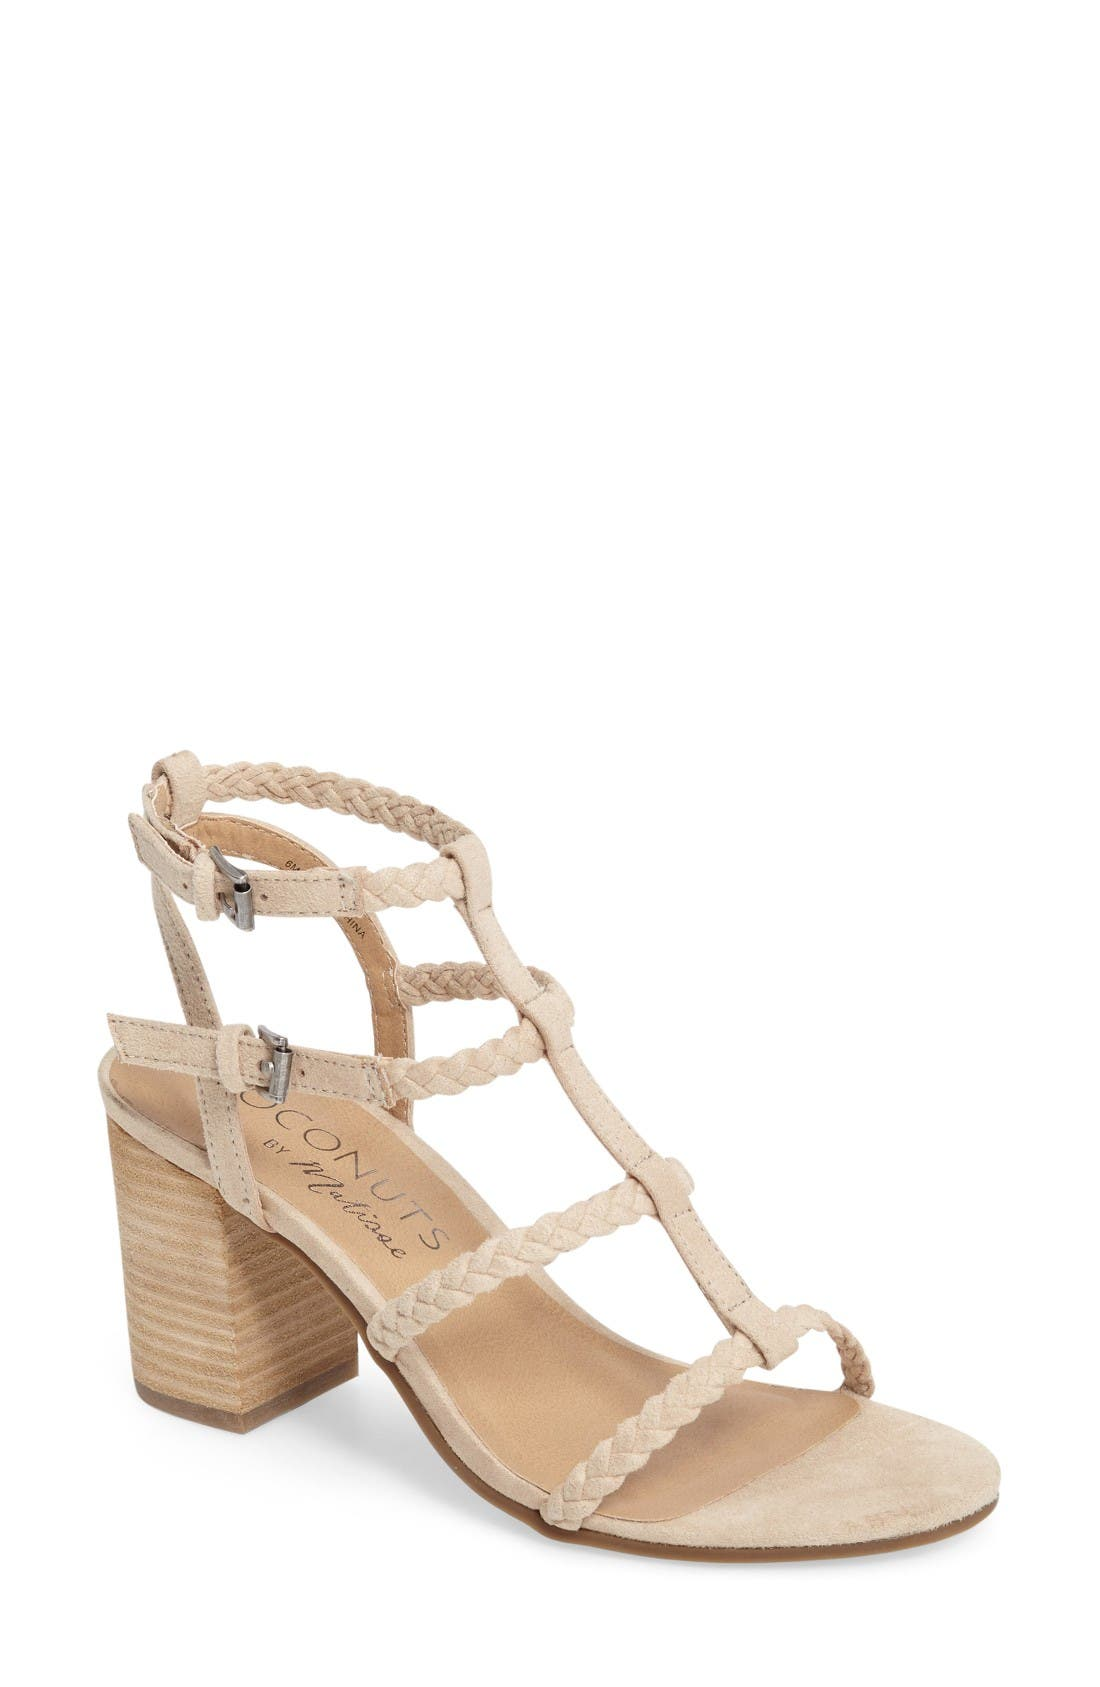 Main Image - Coconuts by Matisse Cora Sandal (Women)